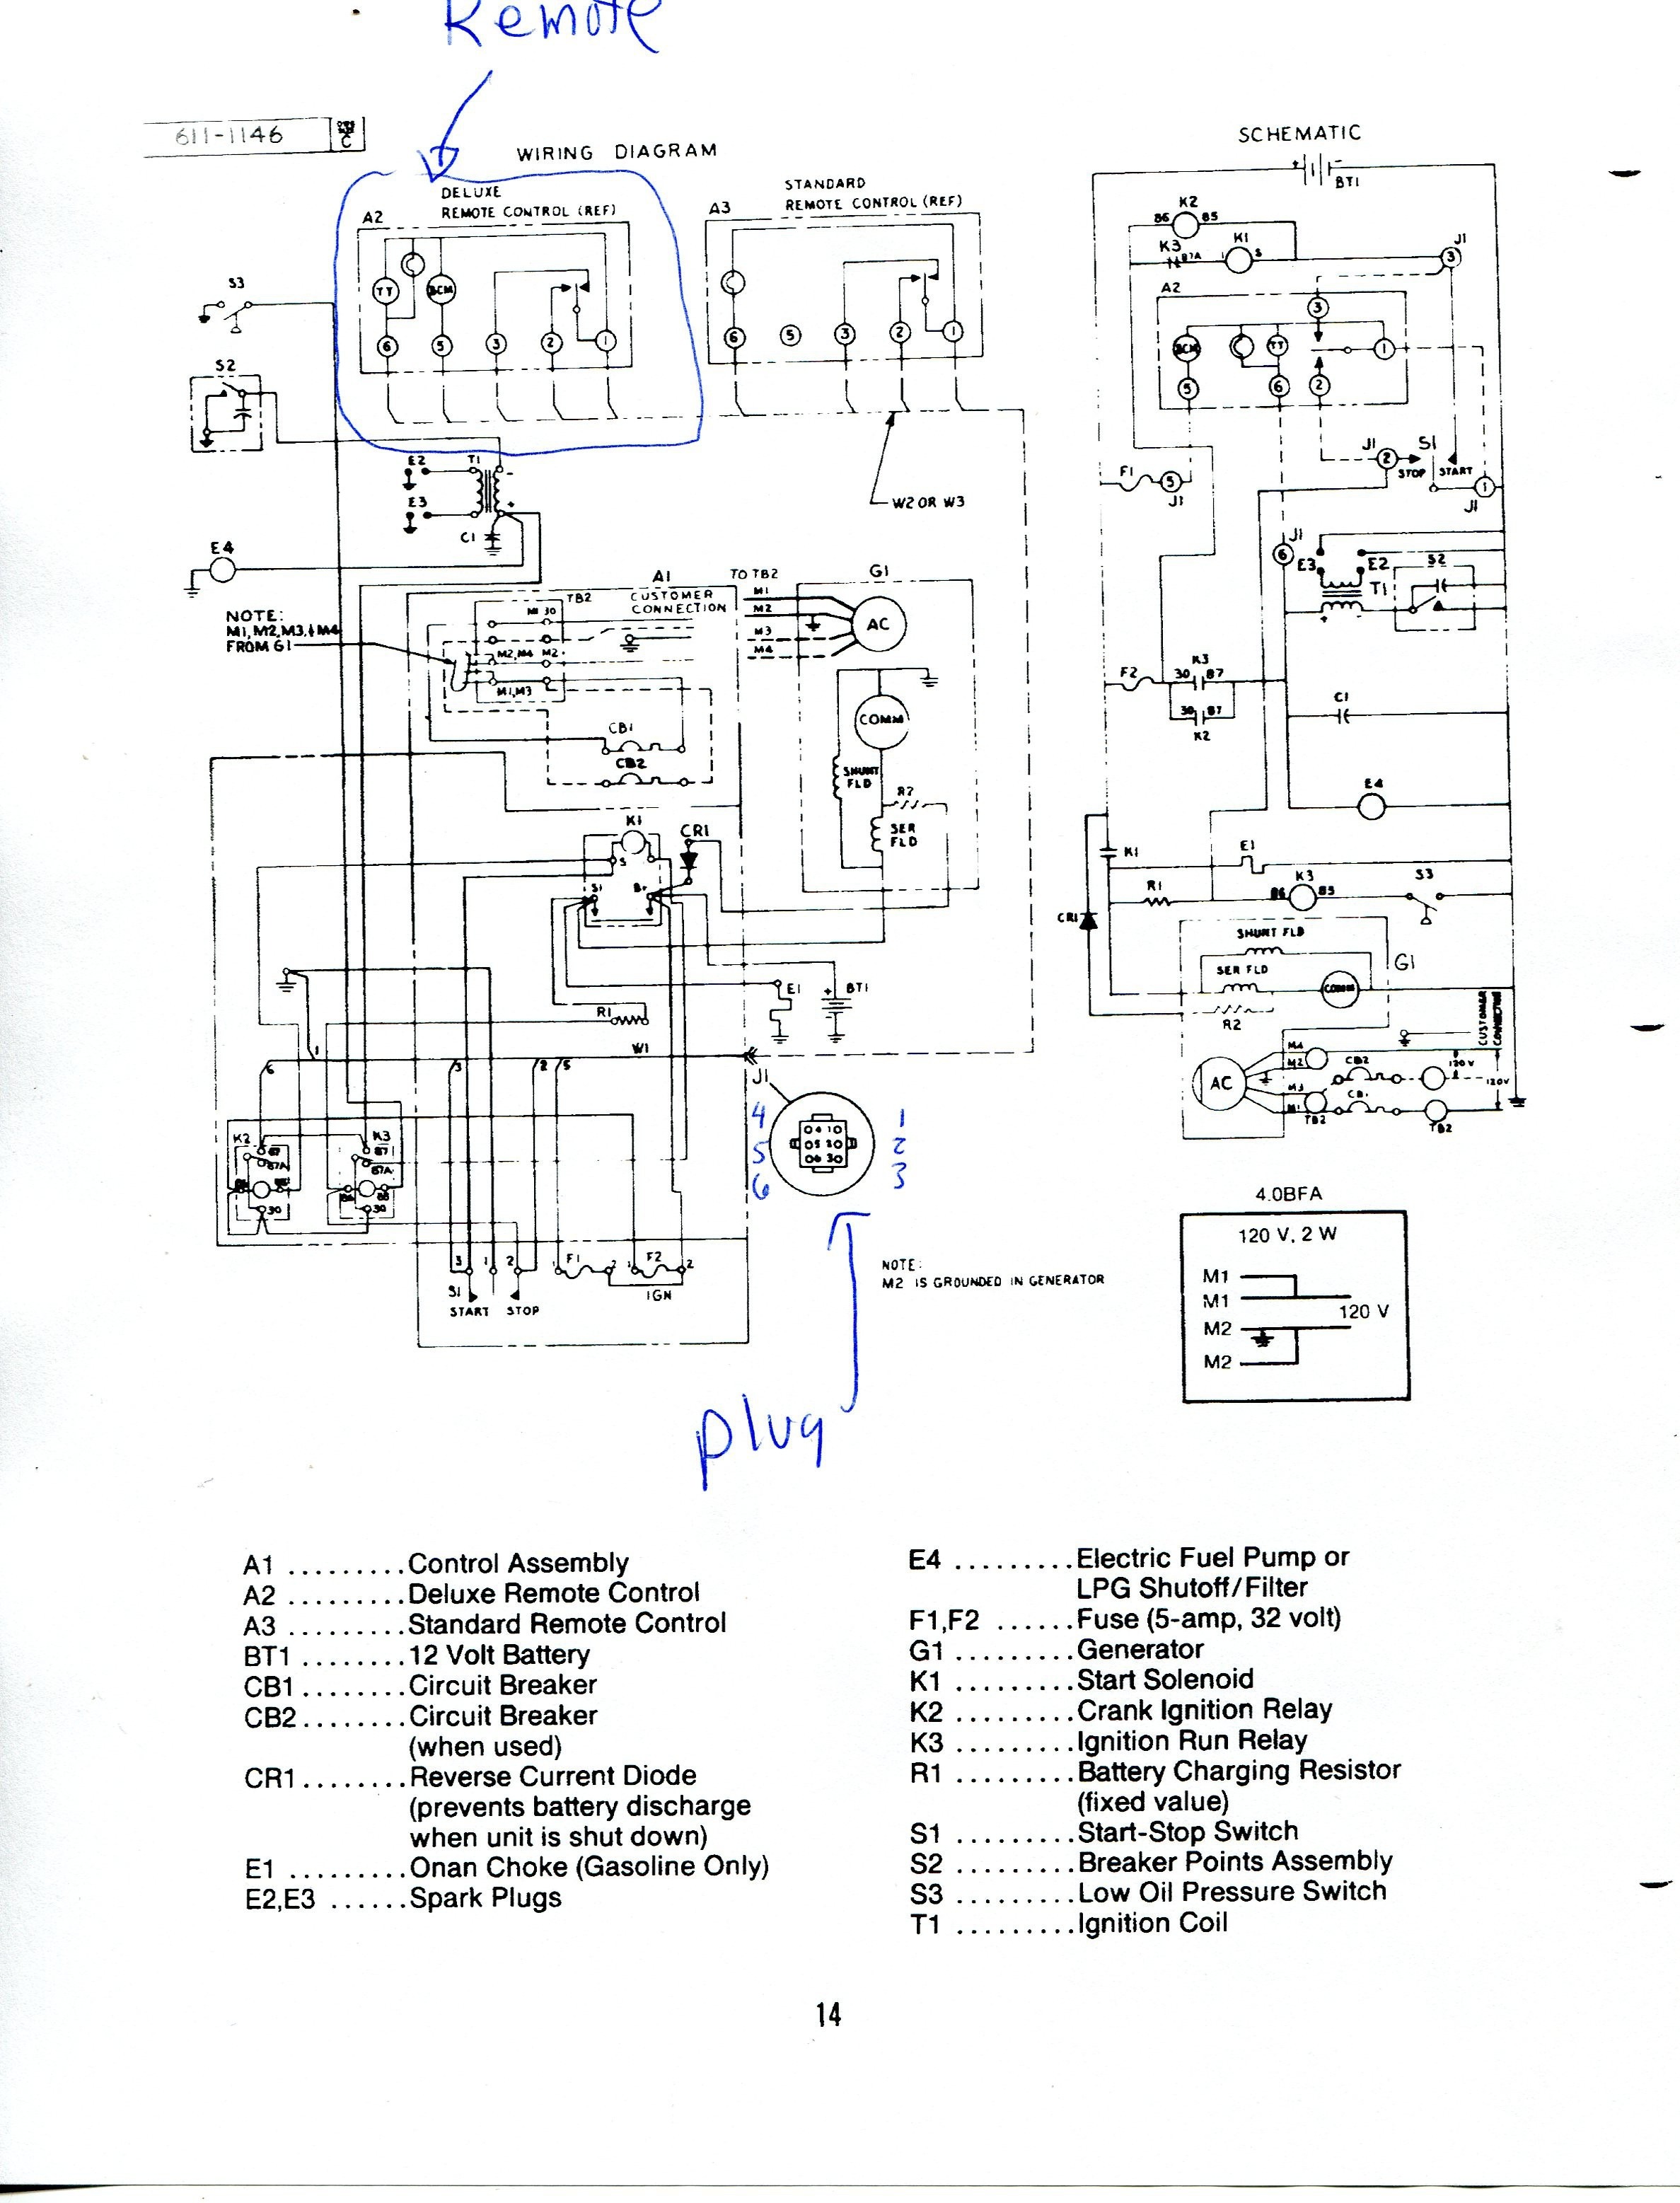 onan generator remote start switch wiring diagram | free ... onan generator remote switch wiring diagram generac generator remote start wiring diagram